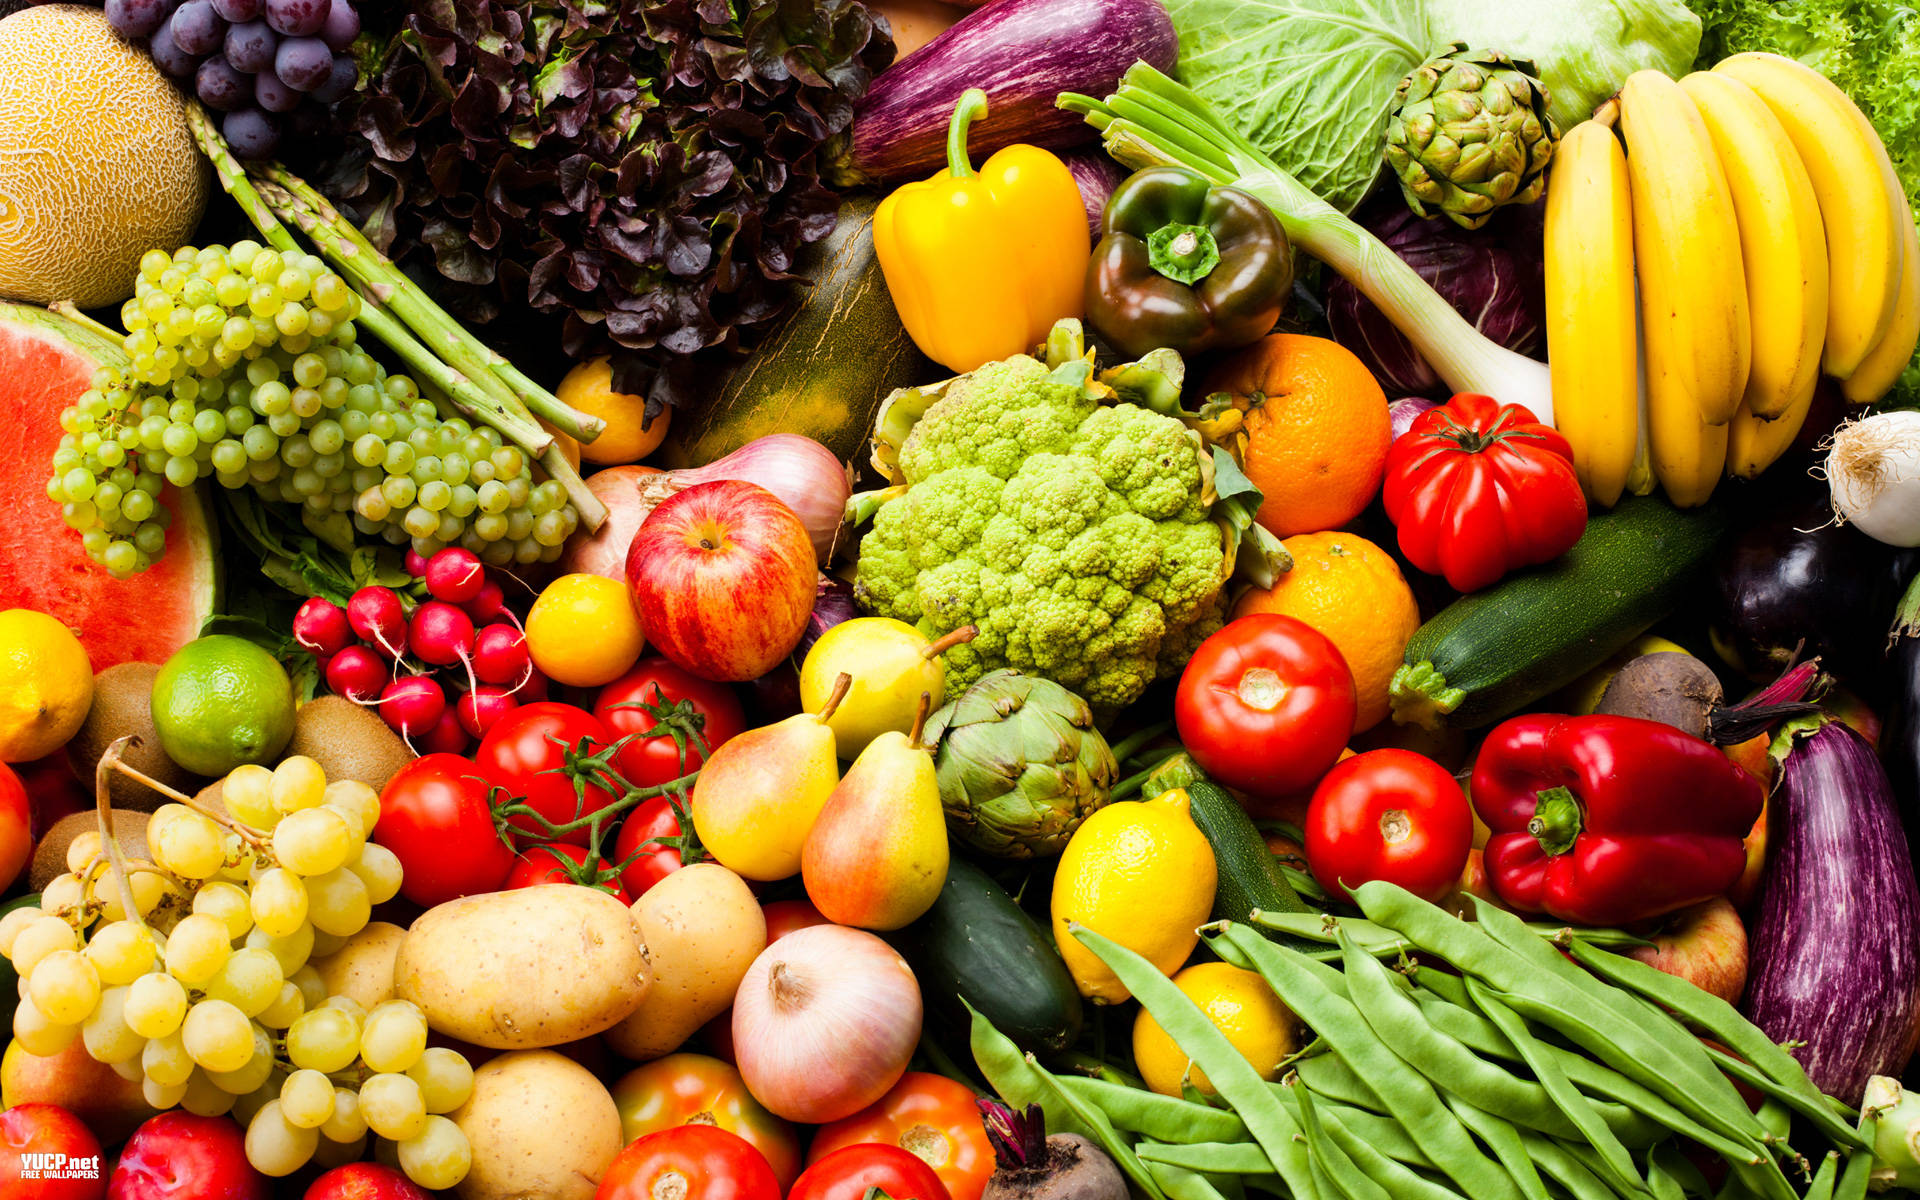 How many fruits and vegetables we need in order to stay healthy how many fruits and vegetables we need in order to stay healthy health thoroughfare altavistaventures Choice Image